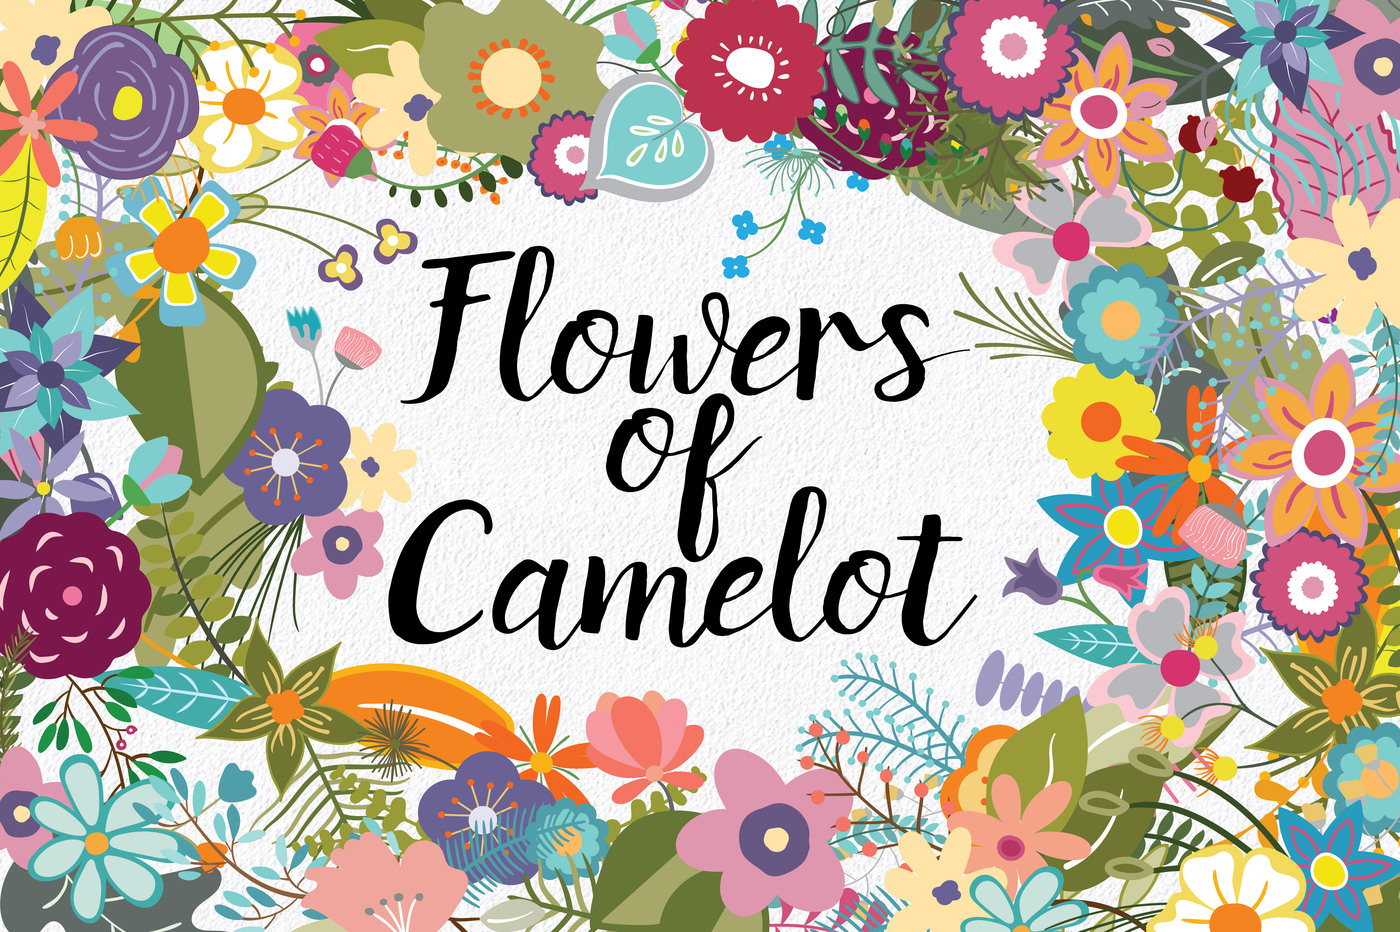 Flowers of Camelot.